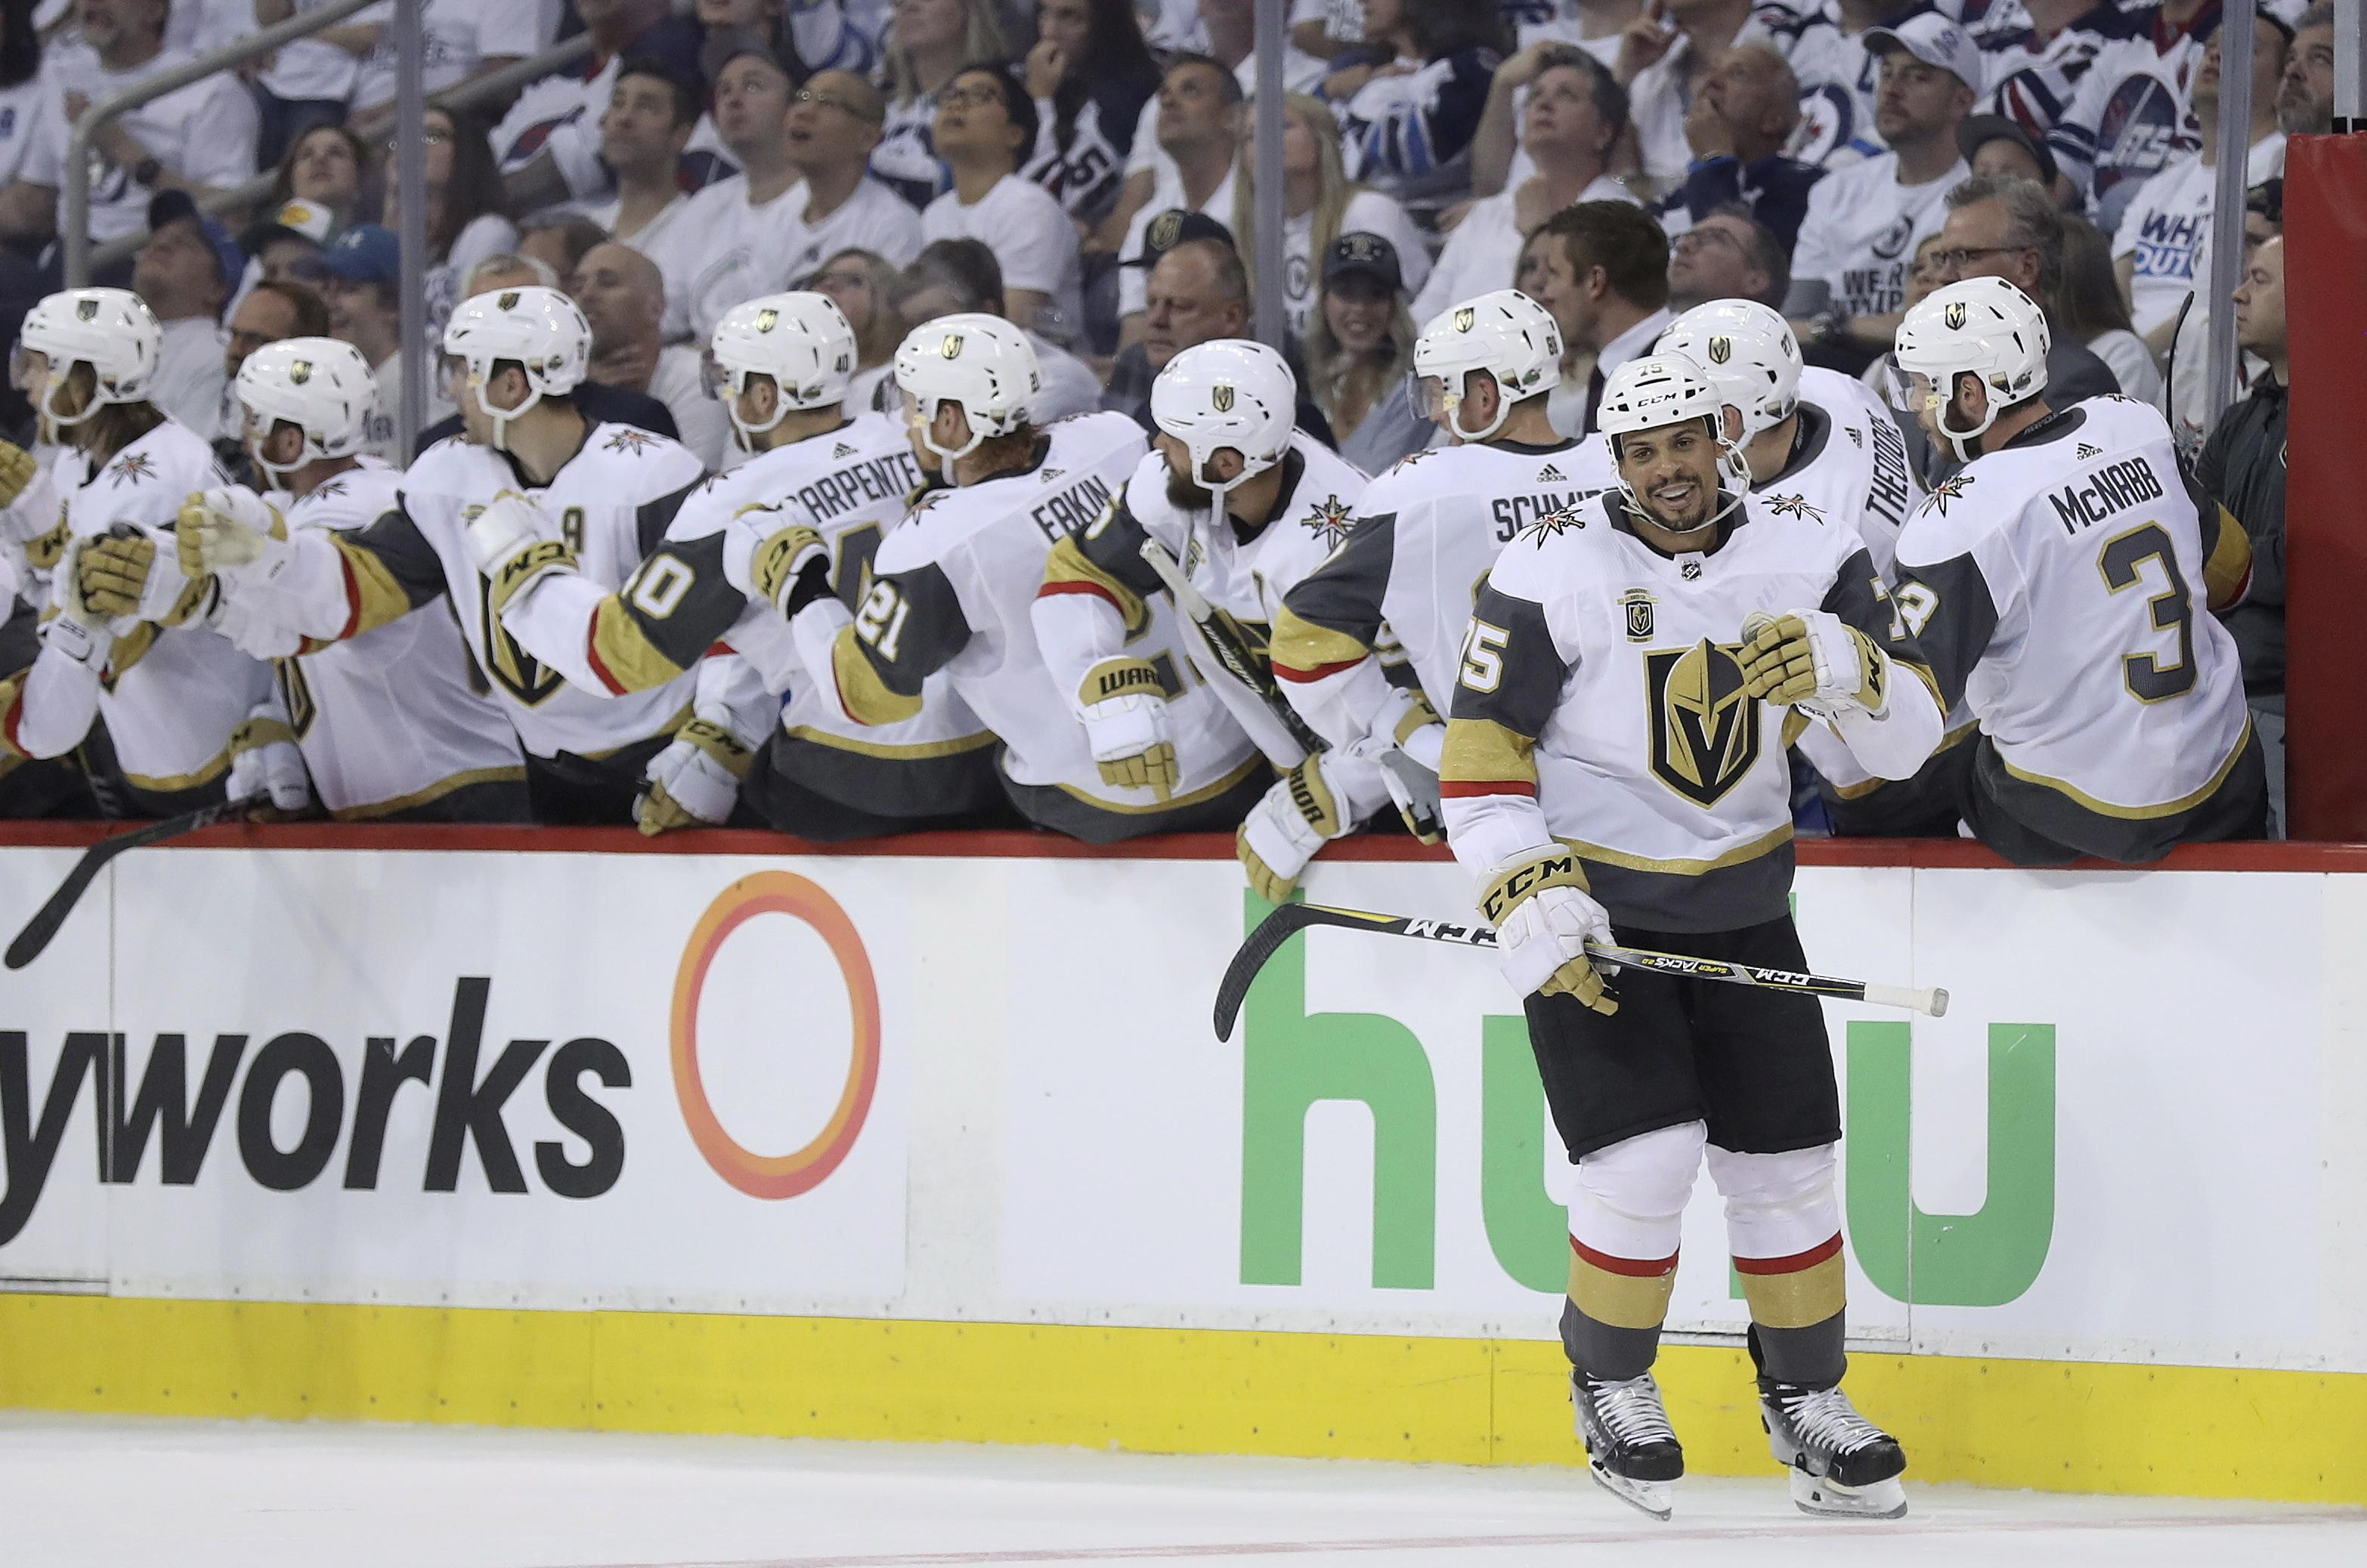 aef7354d74d The Vegas Golden Knights celebrate after Ryan Reaves (75) scored during  second period NHL